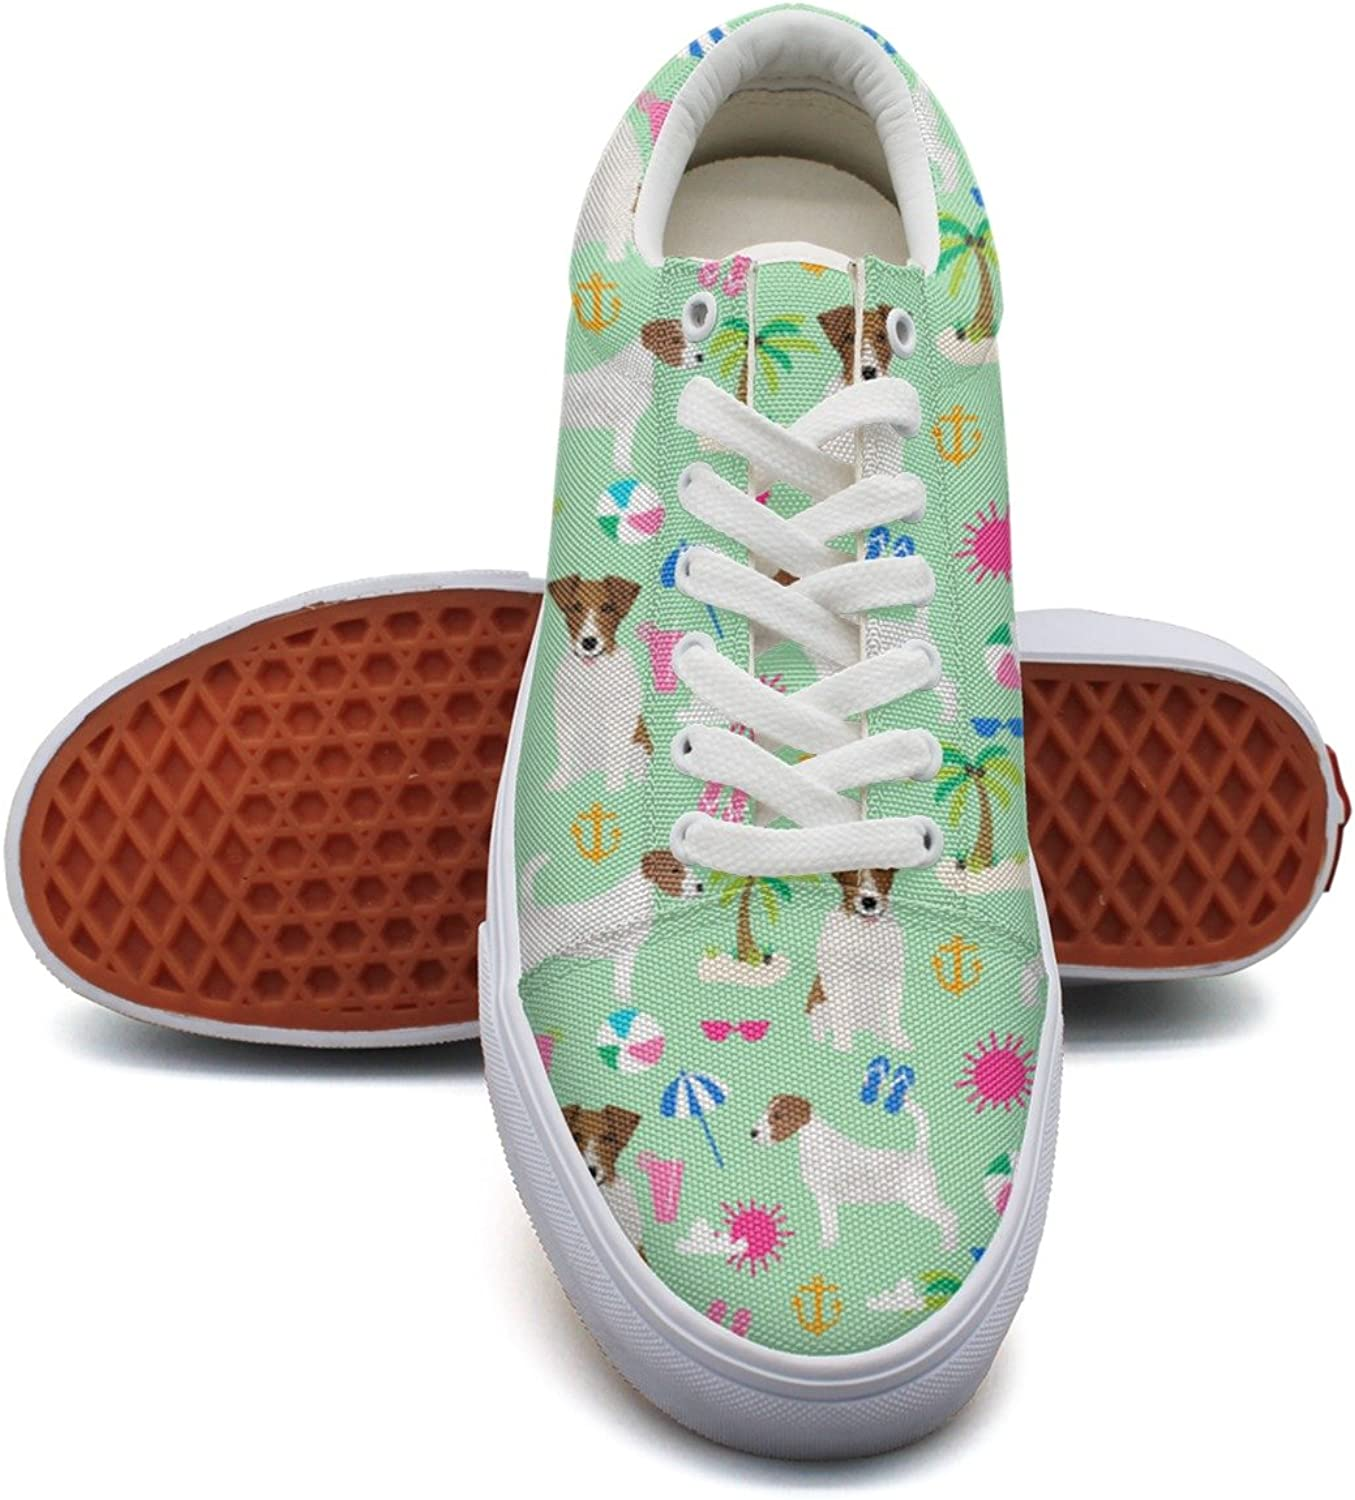 Feenfling Jack Russell Terrier Palm Tree Beach Dog Womens Printed Canvas Deck shoes Low Top Hip Hop Athletic Sneakers for Women Girls